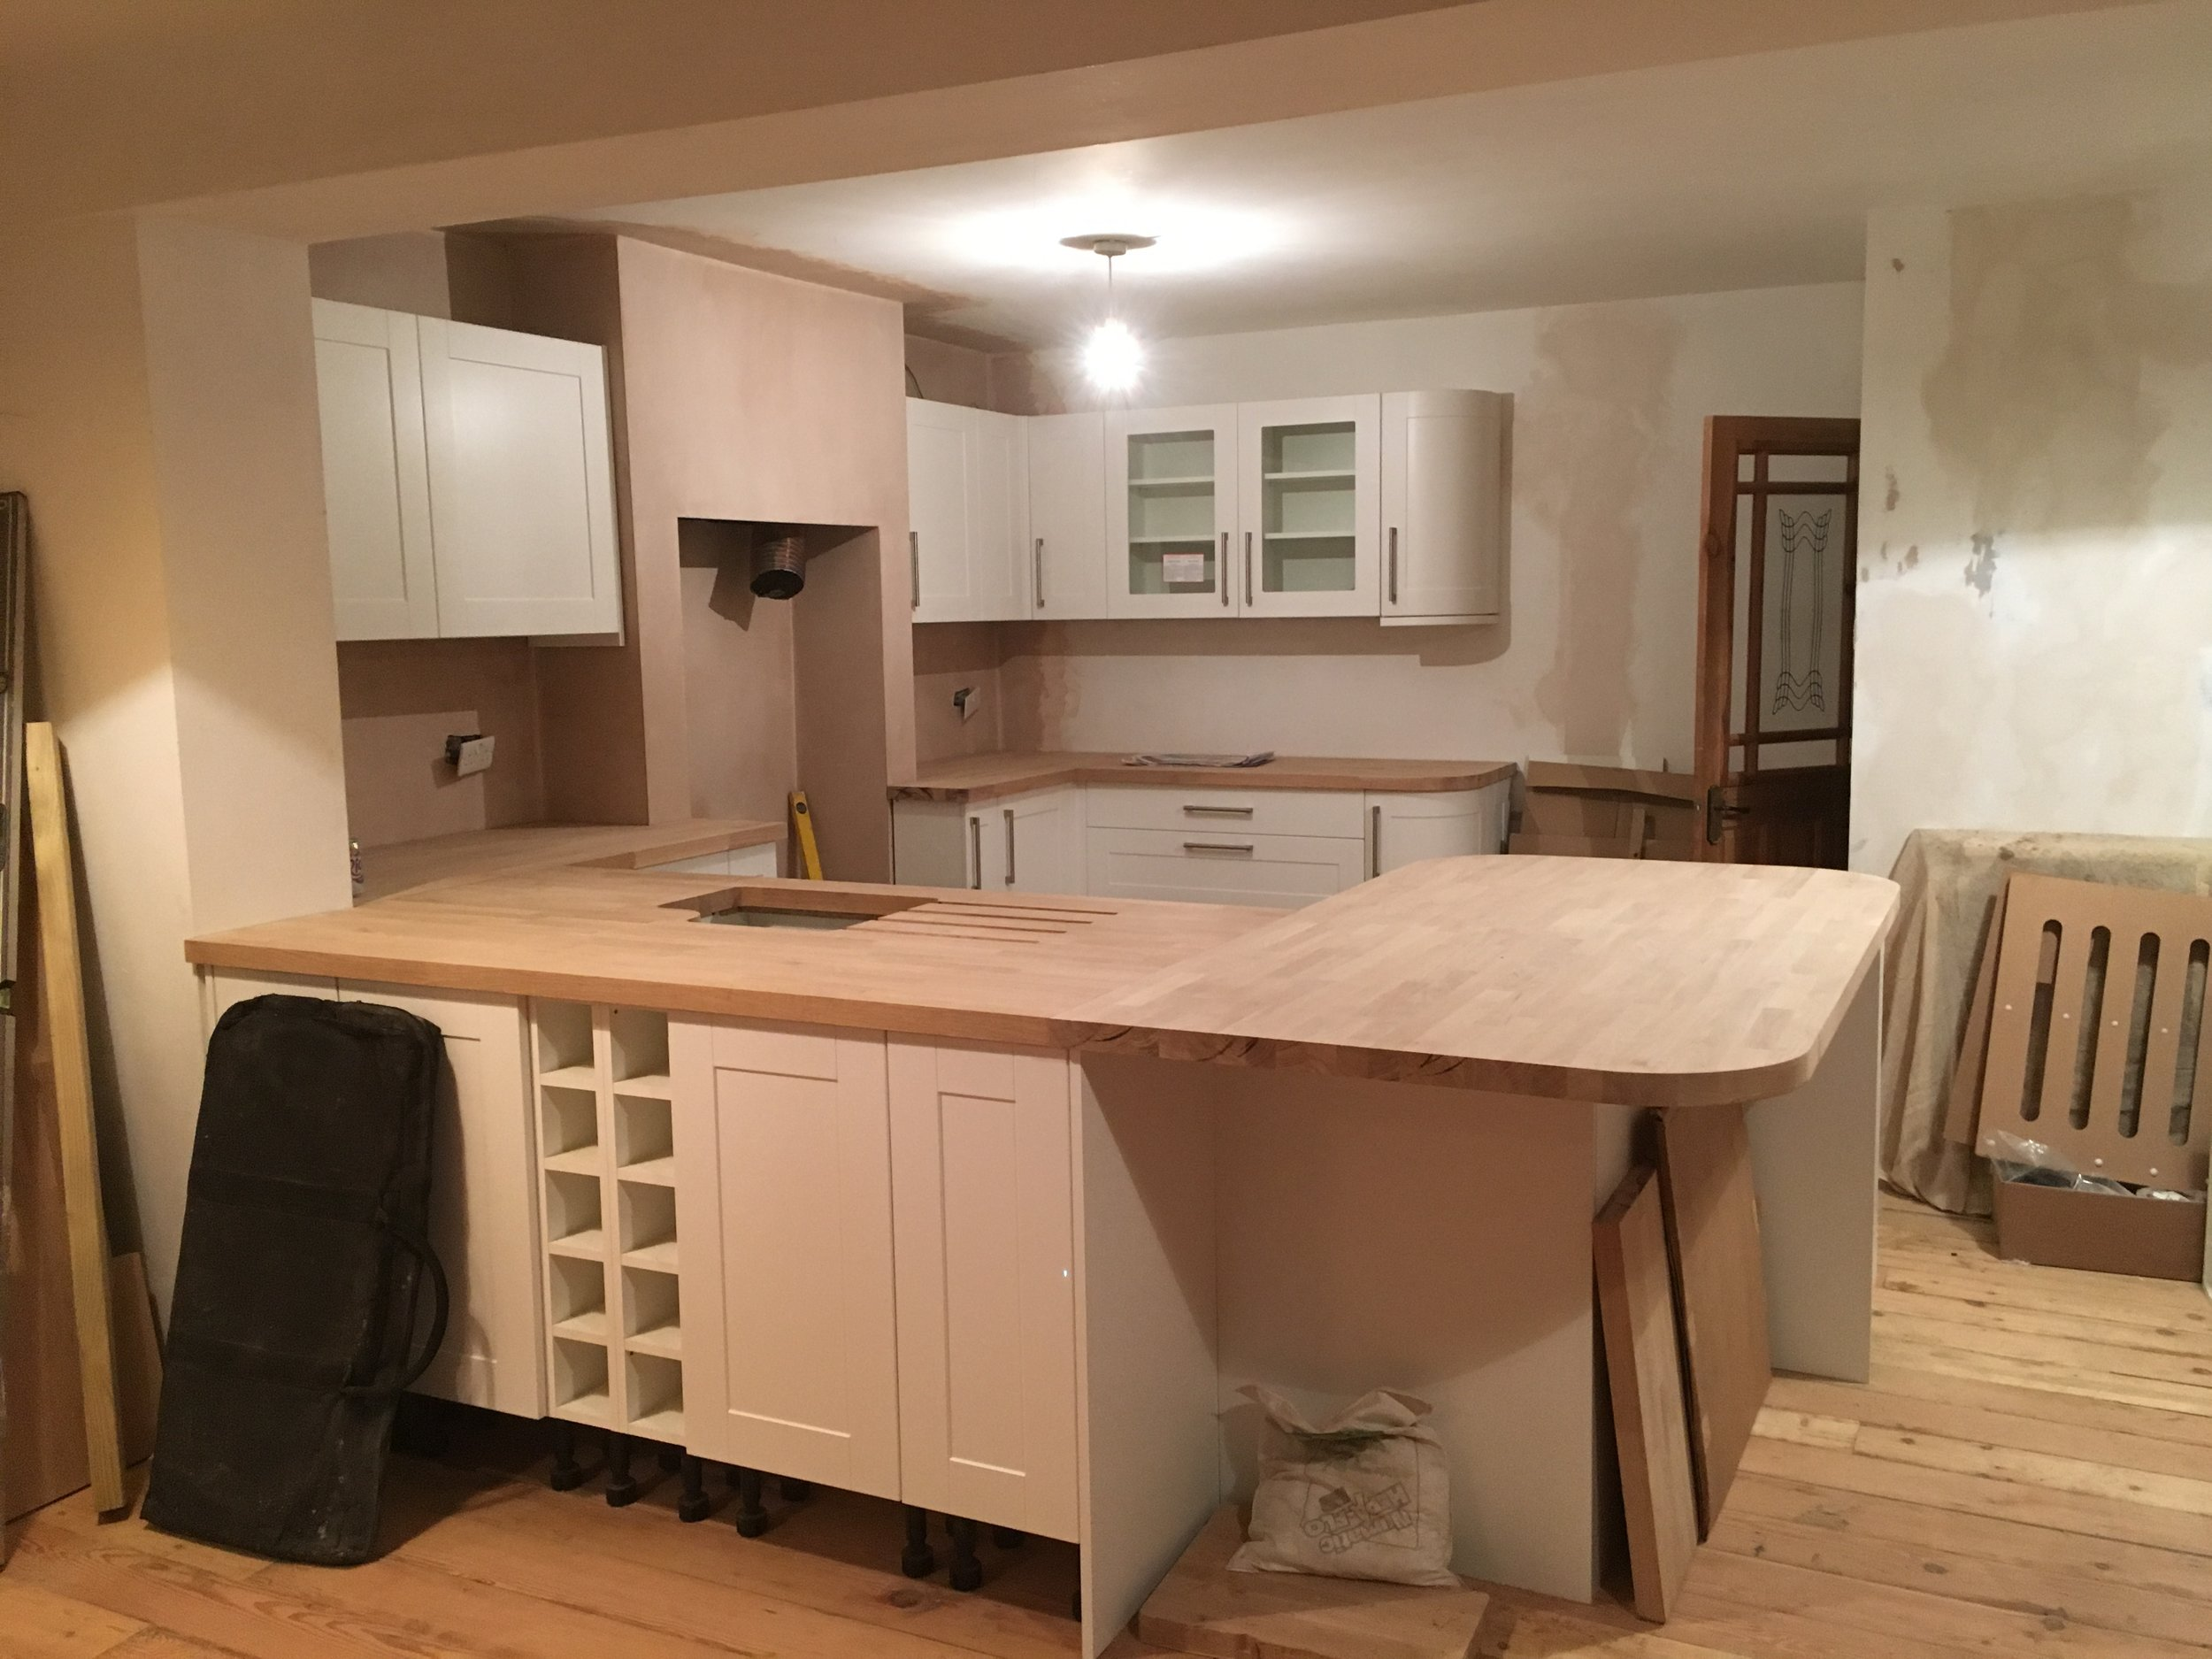 Kitchen units and worktops completed